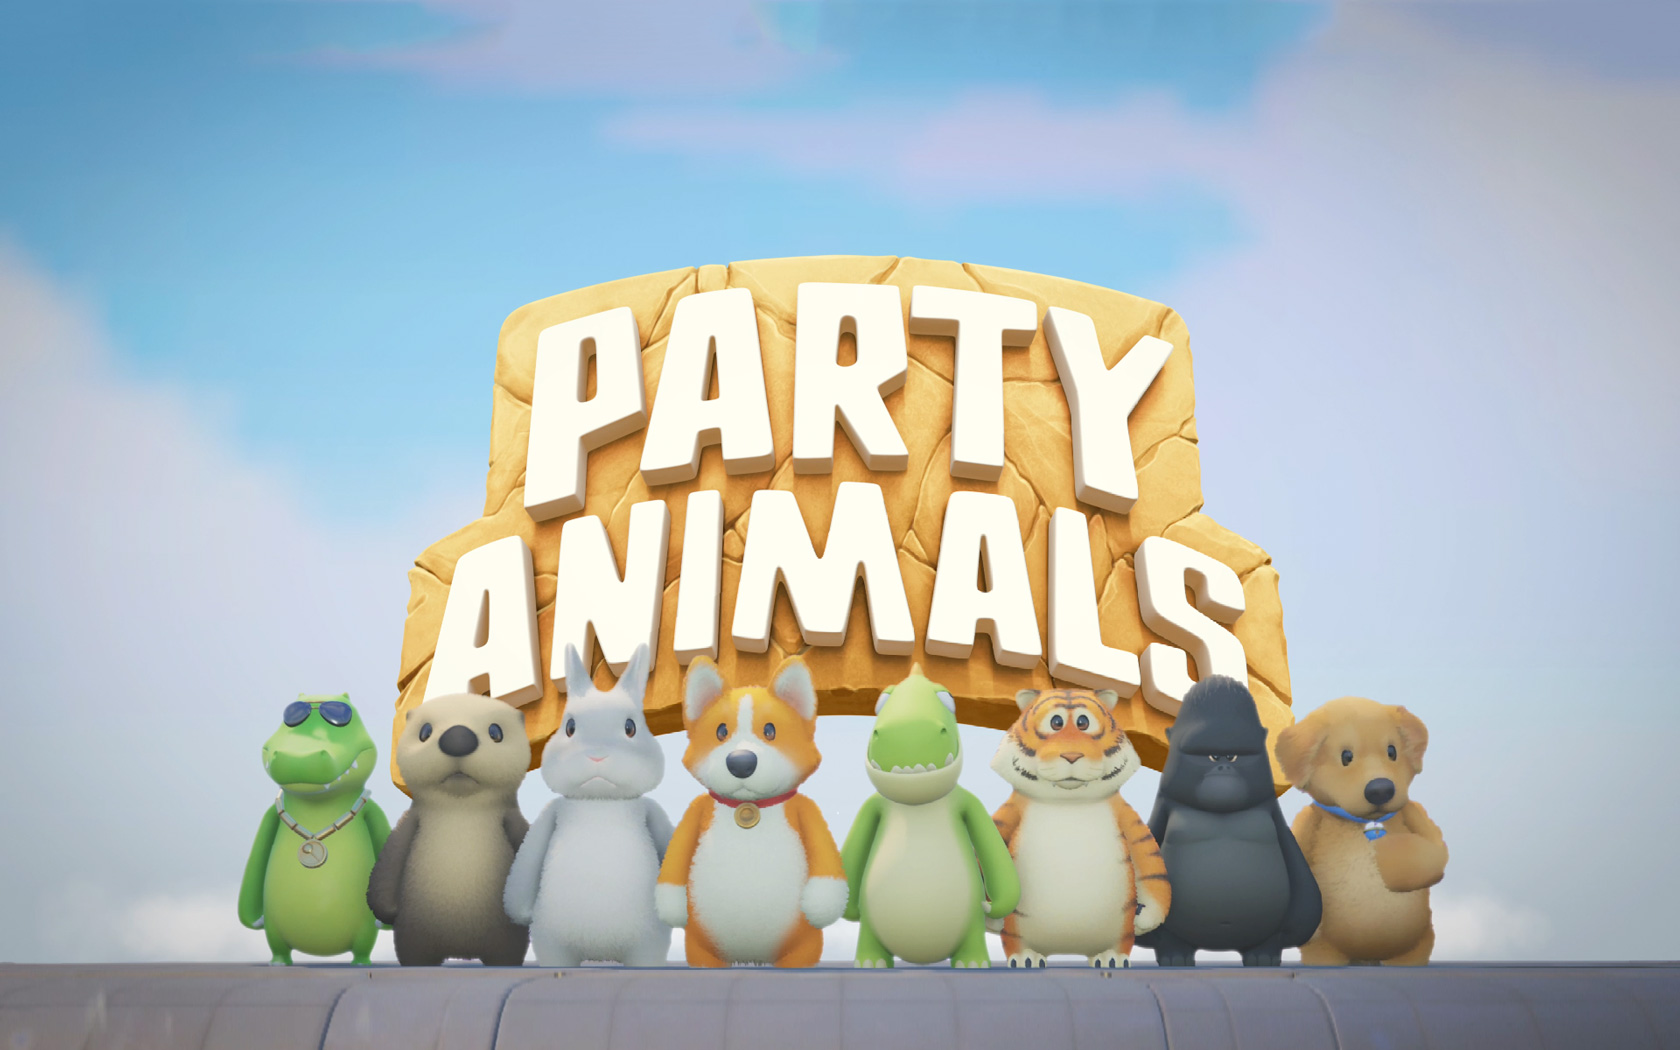 Free Party Animals Wallpaper in 1680x1050